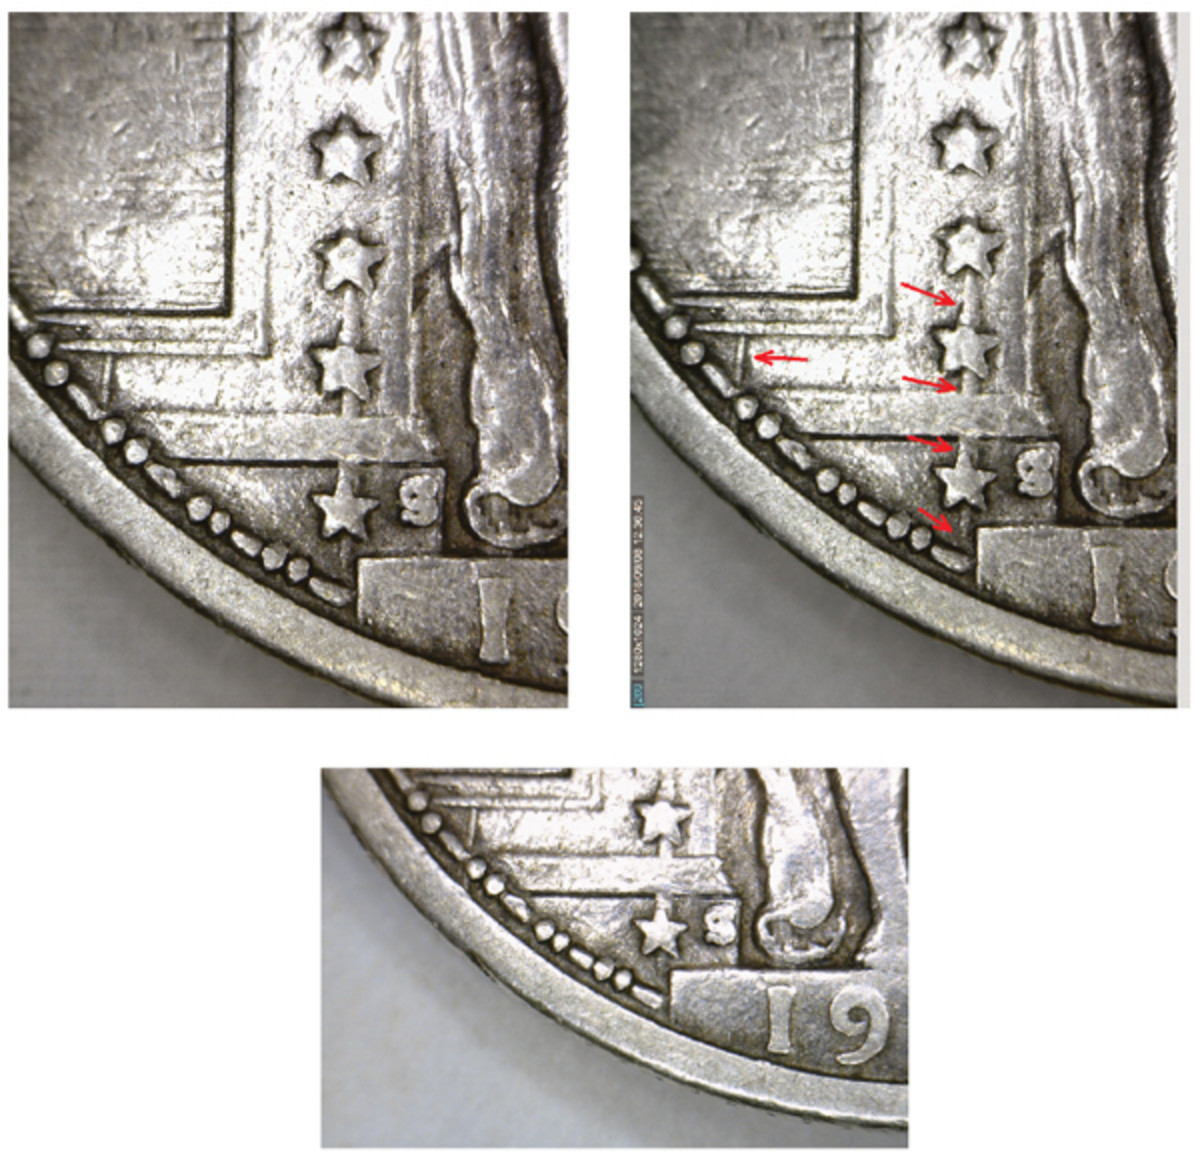 """The bottom three stars on this 1917-S Type I quarter appear to be skewered (top left). The second photo (top right) shows where the die gouges are located. This is a raised area of metal on the coin itself. The gouge is recessed on the die. The lesser die gouge appears to the left. The third image (bottom) shows the """"19"""" portion of the date. (Photos courtesy of Rick DeSanctis)"""